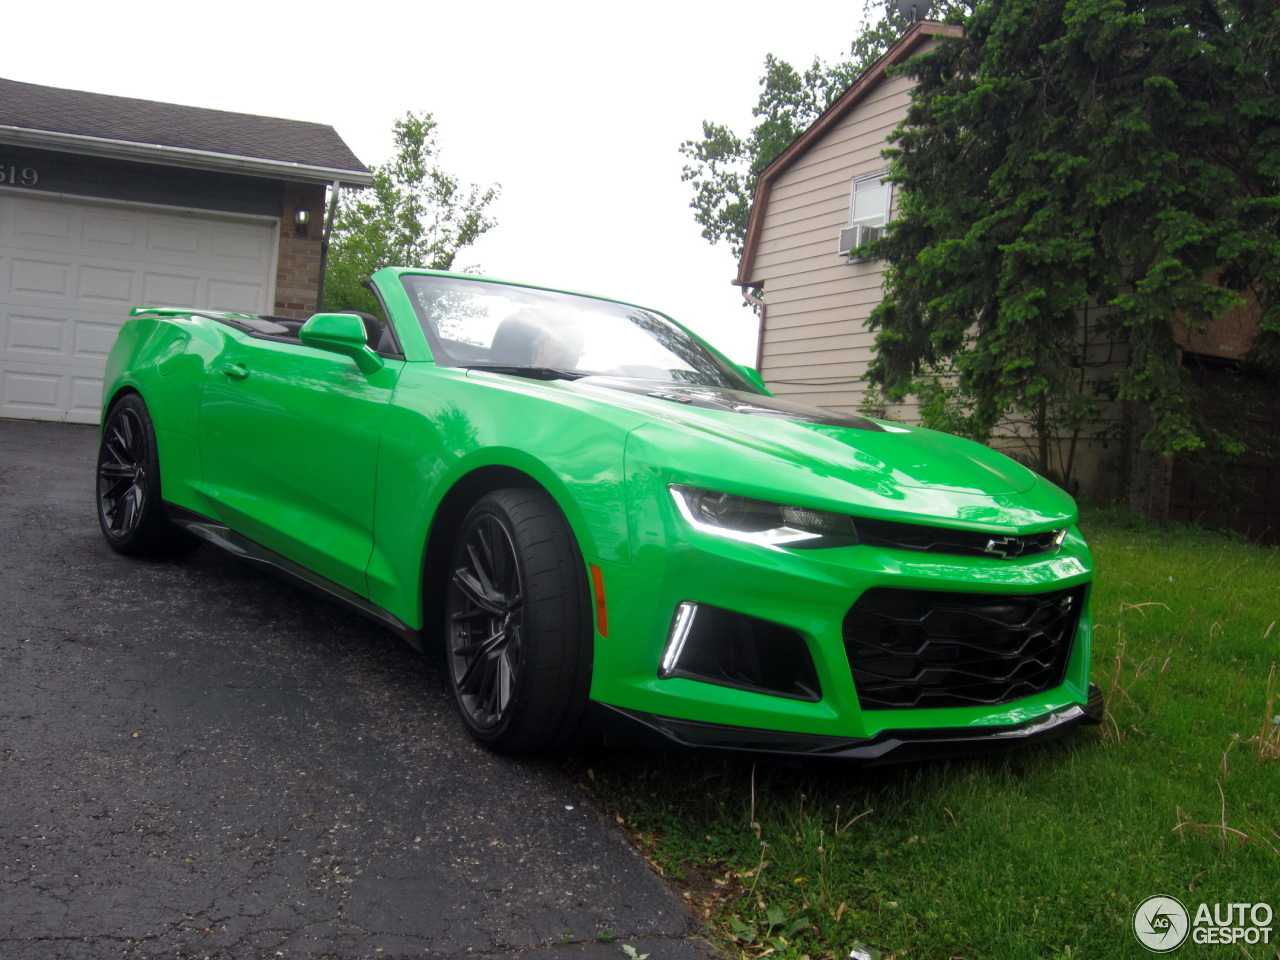 Chevrolet Camaro ZL1 Convertible 2017 27 May 2017